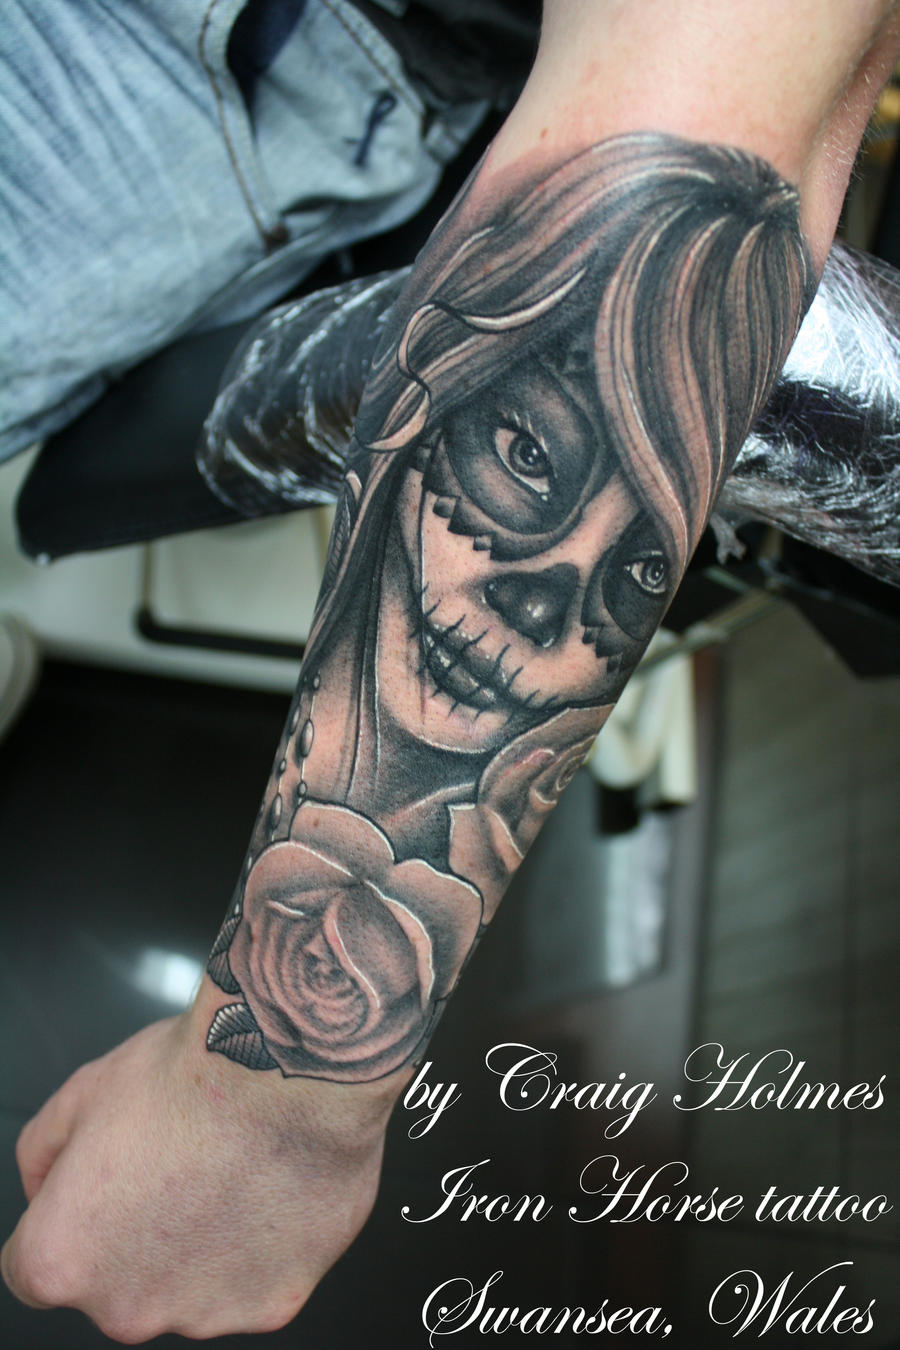 day of the dead girl tattoo by craig holmes by craigholmestattoo on deviantart. Black Bedroom Furniture Sets. Home Design Ideas